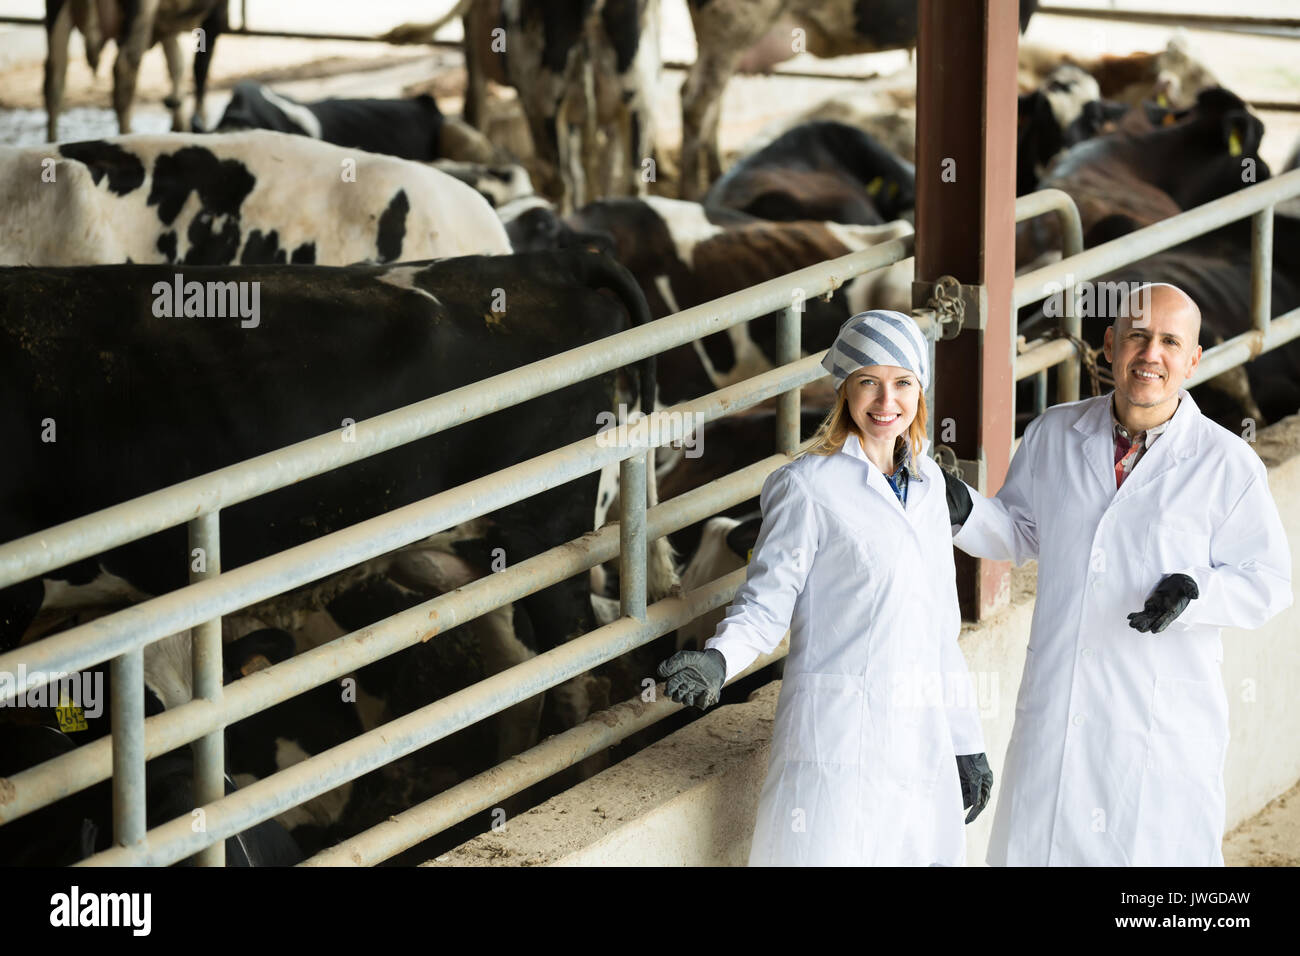 Mature and young veterinary technicians standing near cows in livestock barnm Stock Photo